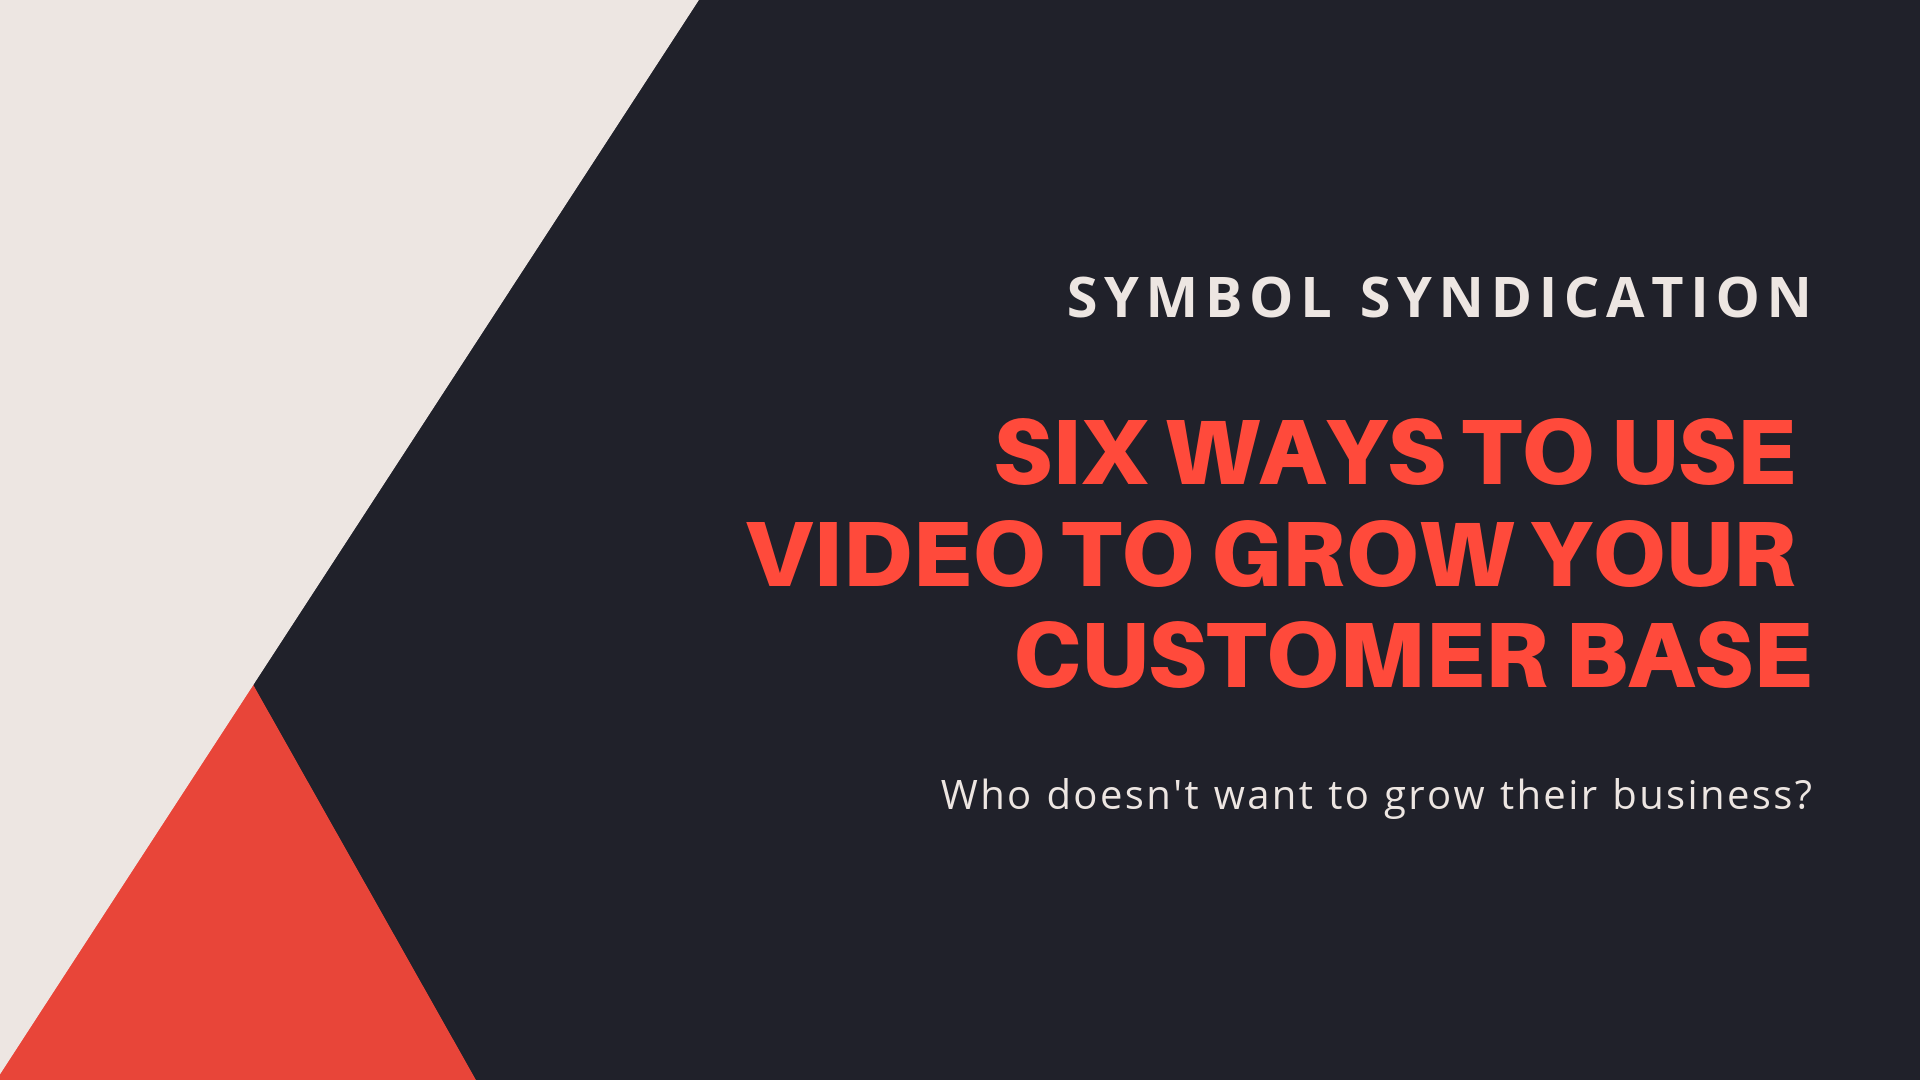 Grow business with video content